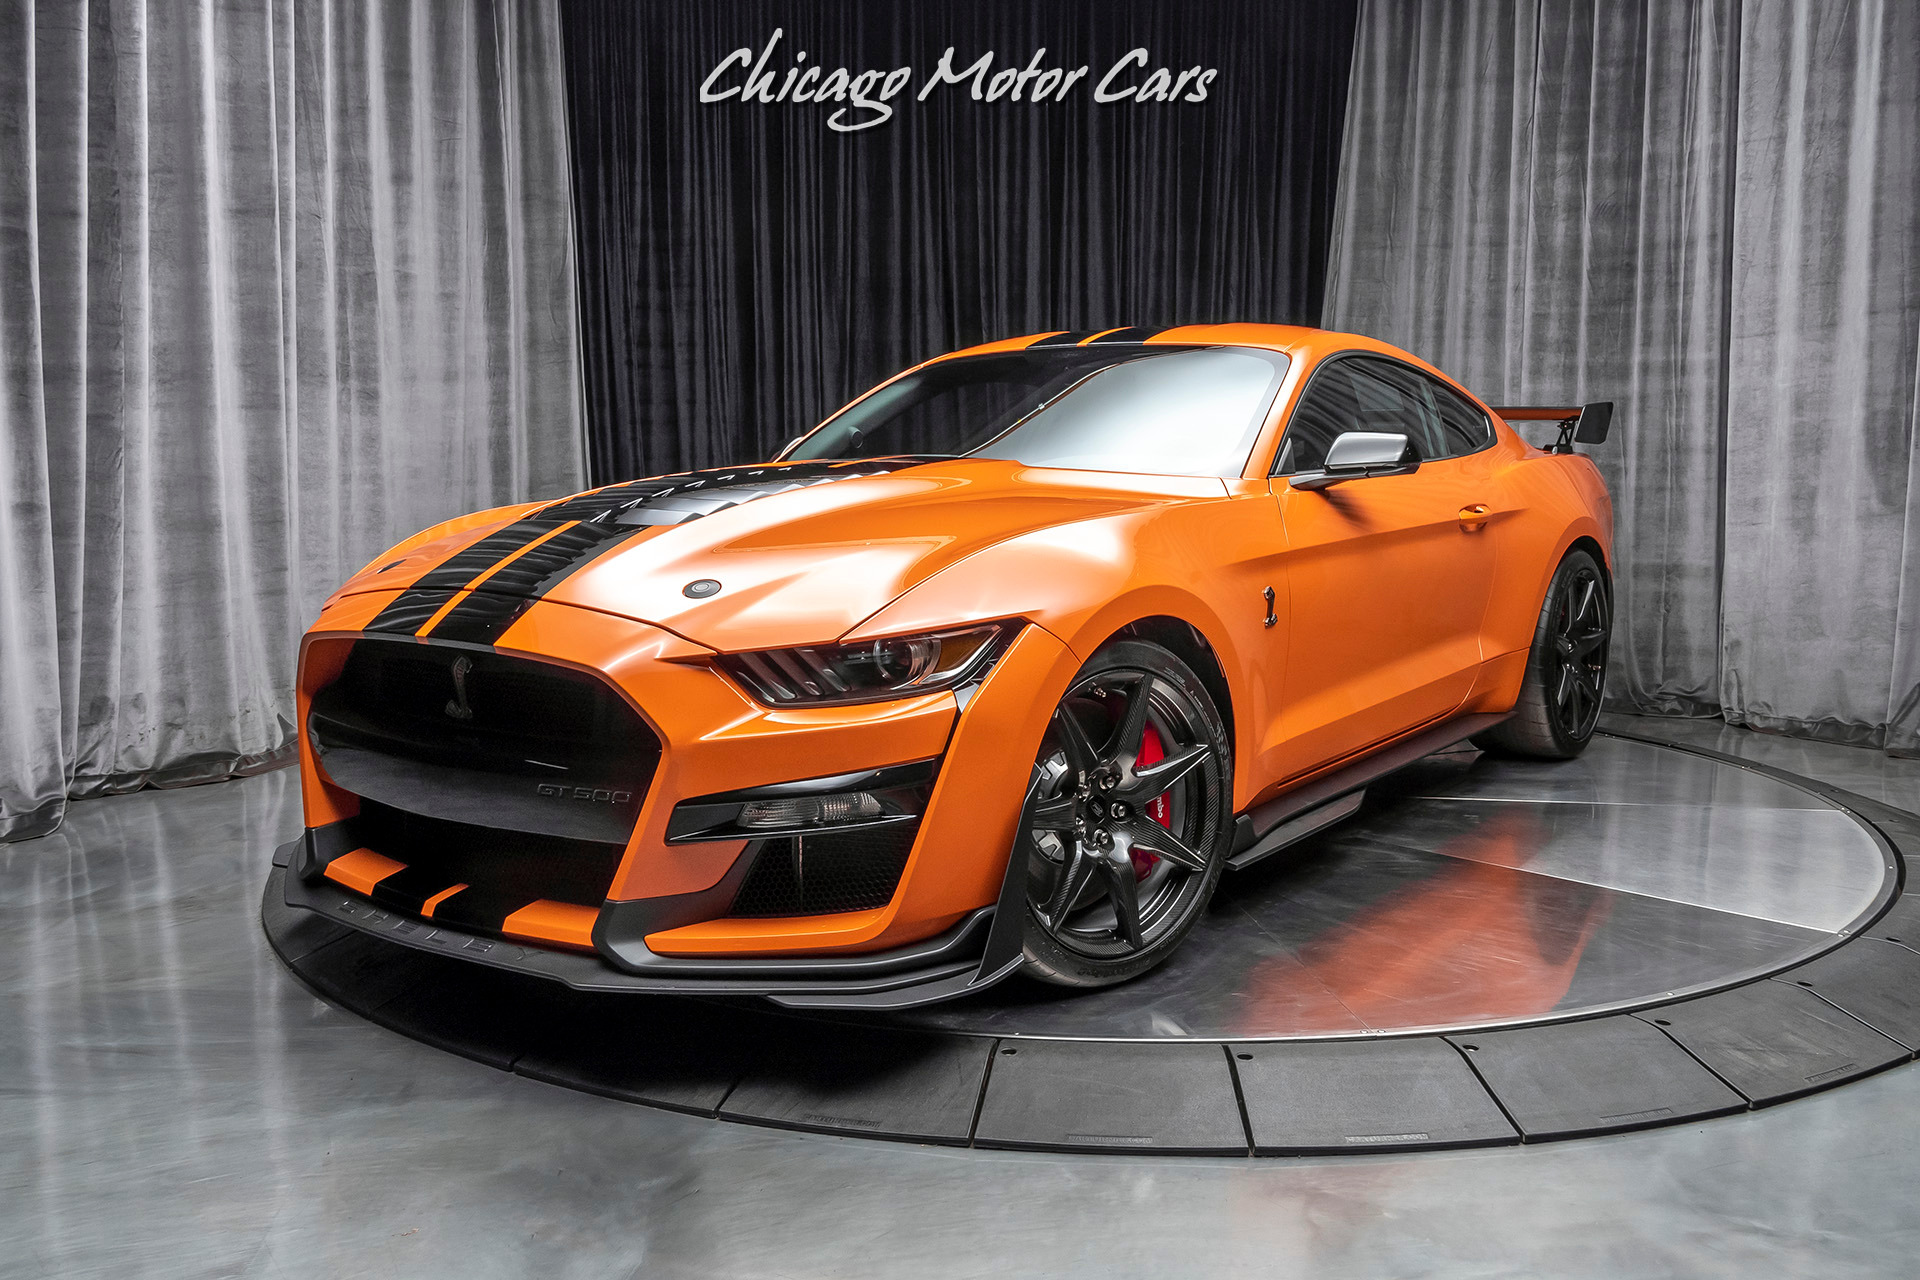 2020 ford mustang shelby gt500 - chicago motor cars